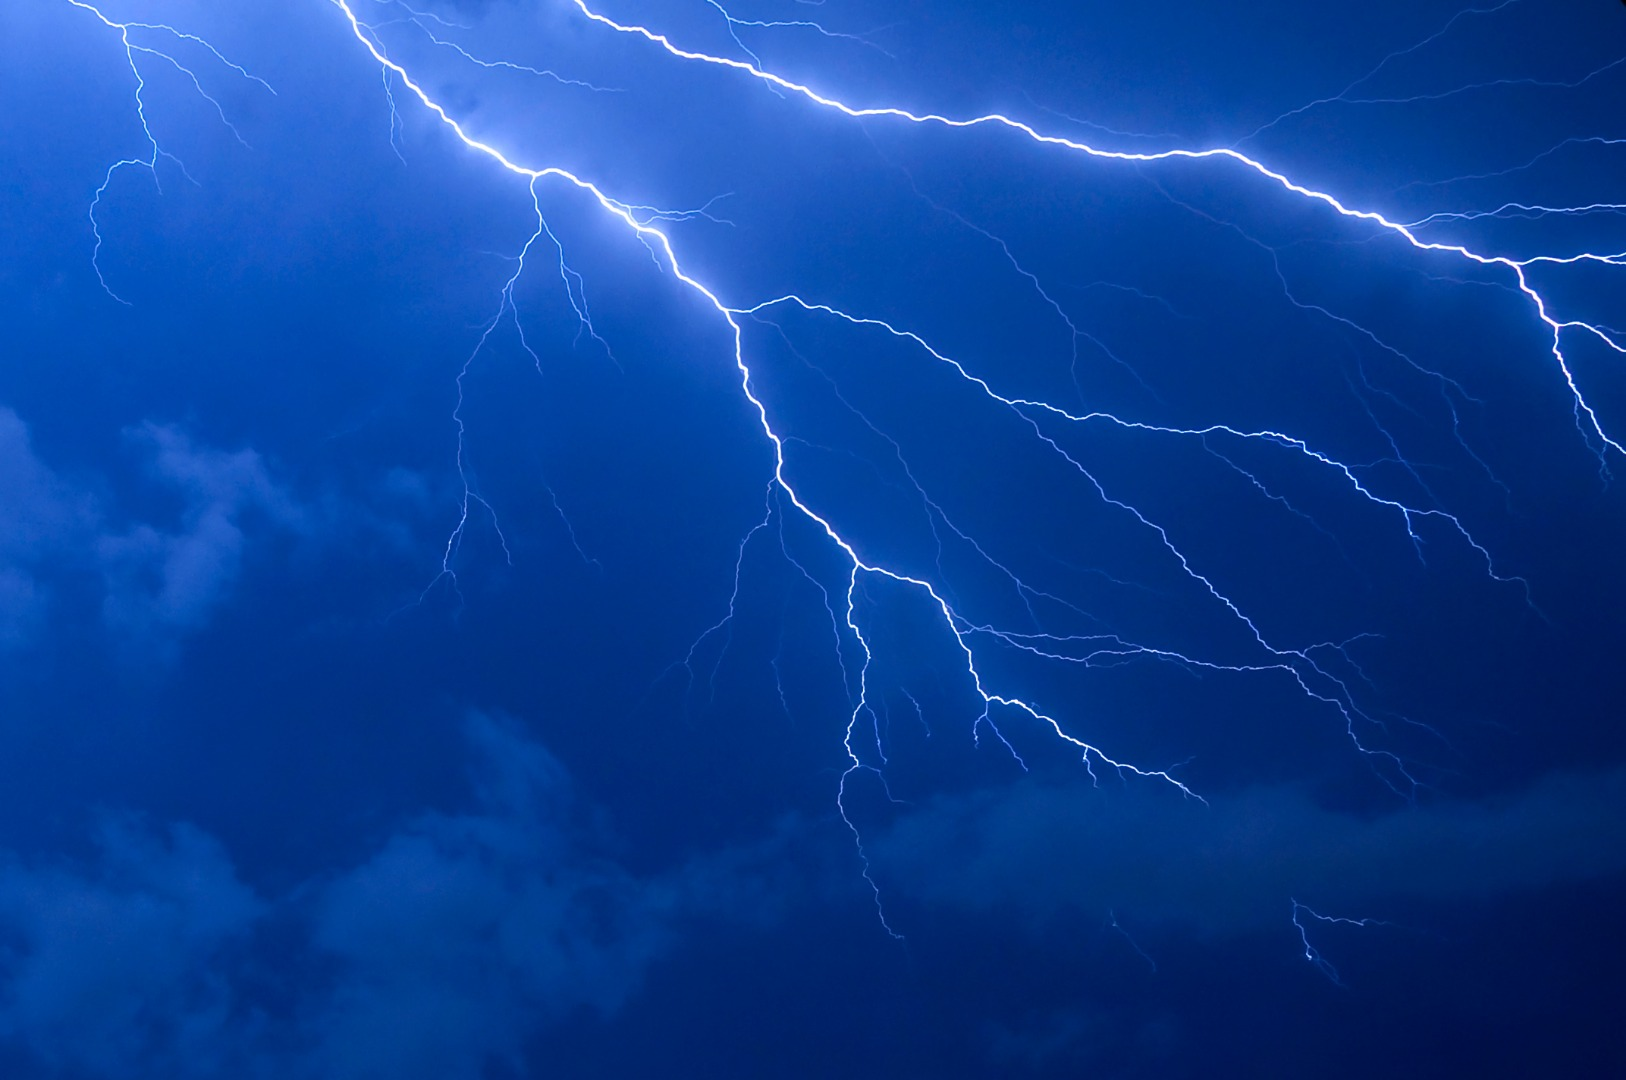 Supernovae-induced lightning may have encouraged humanity's ancestors to walk upright